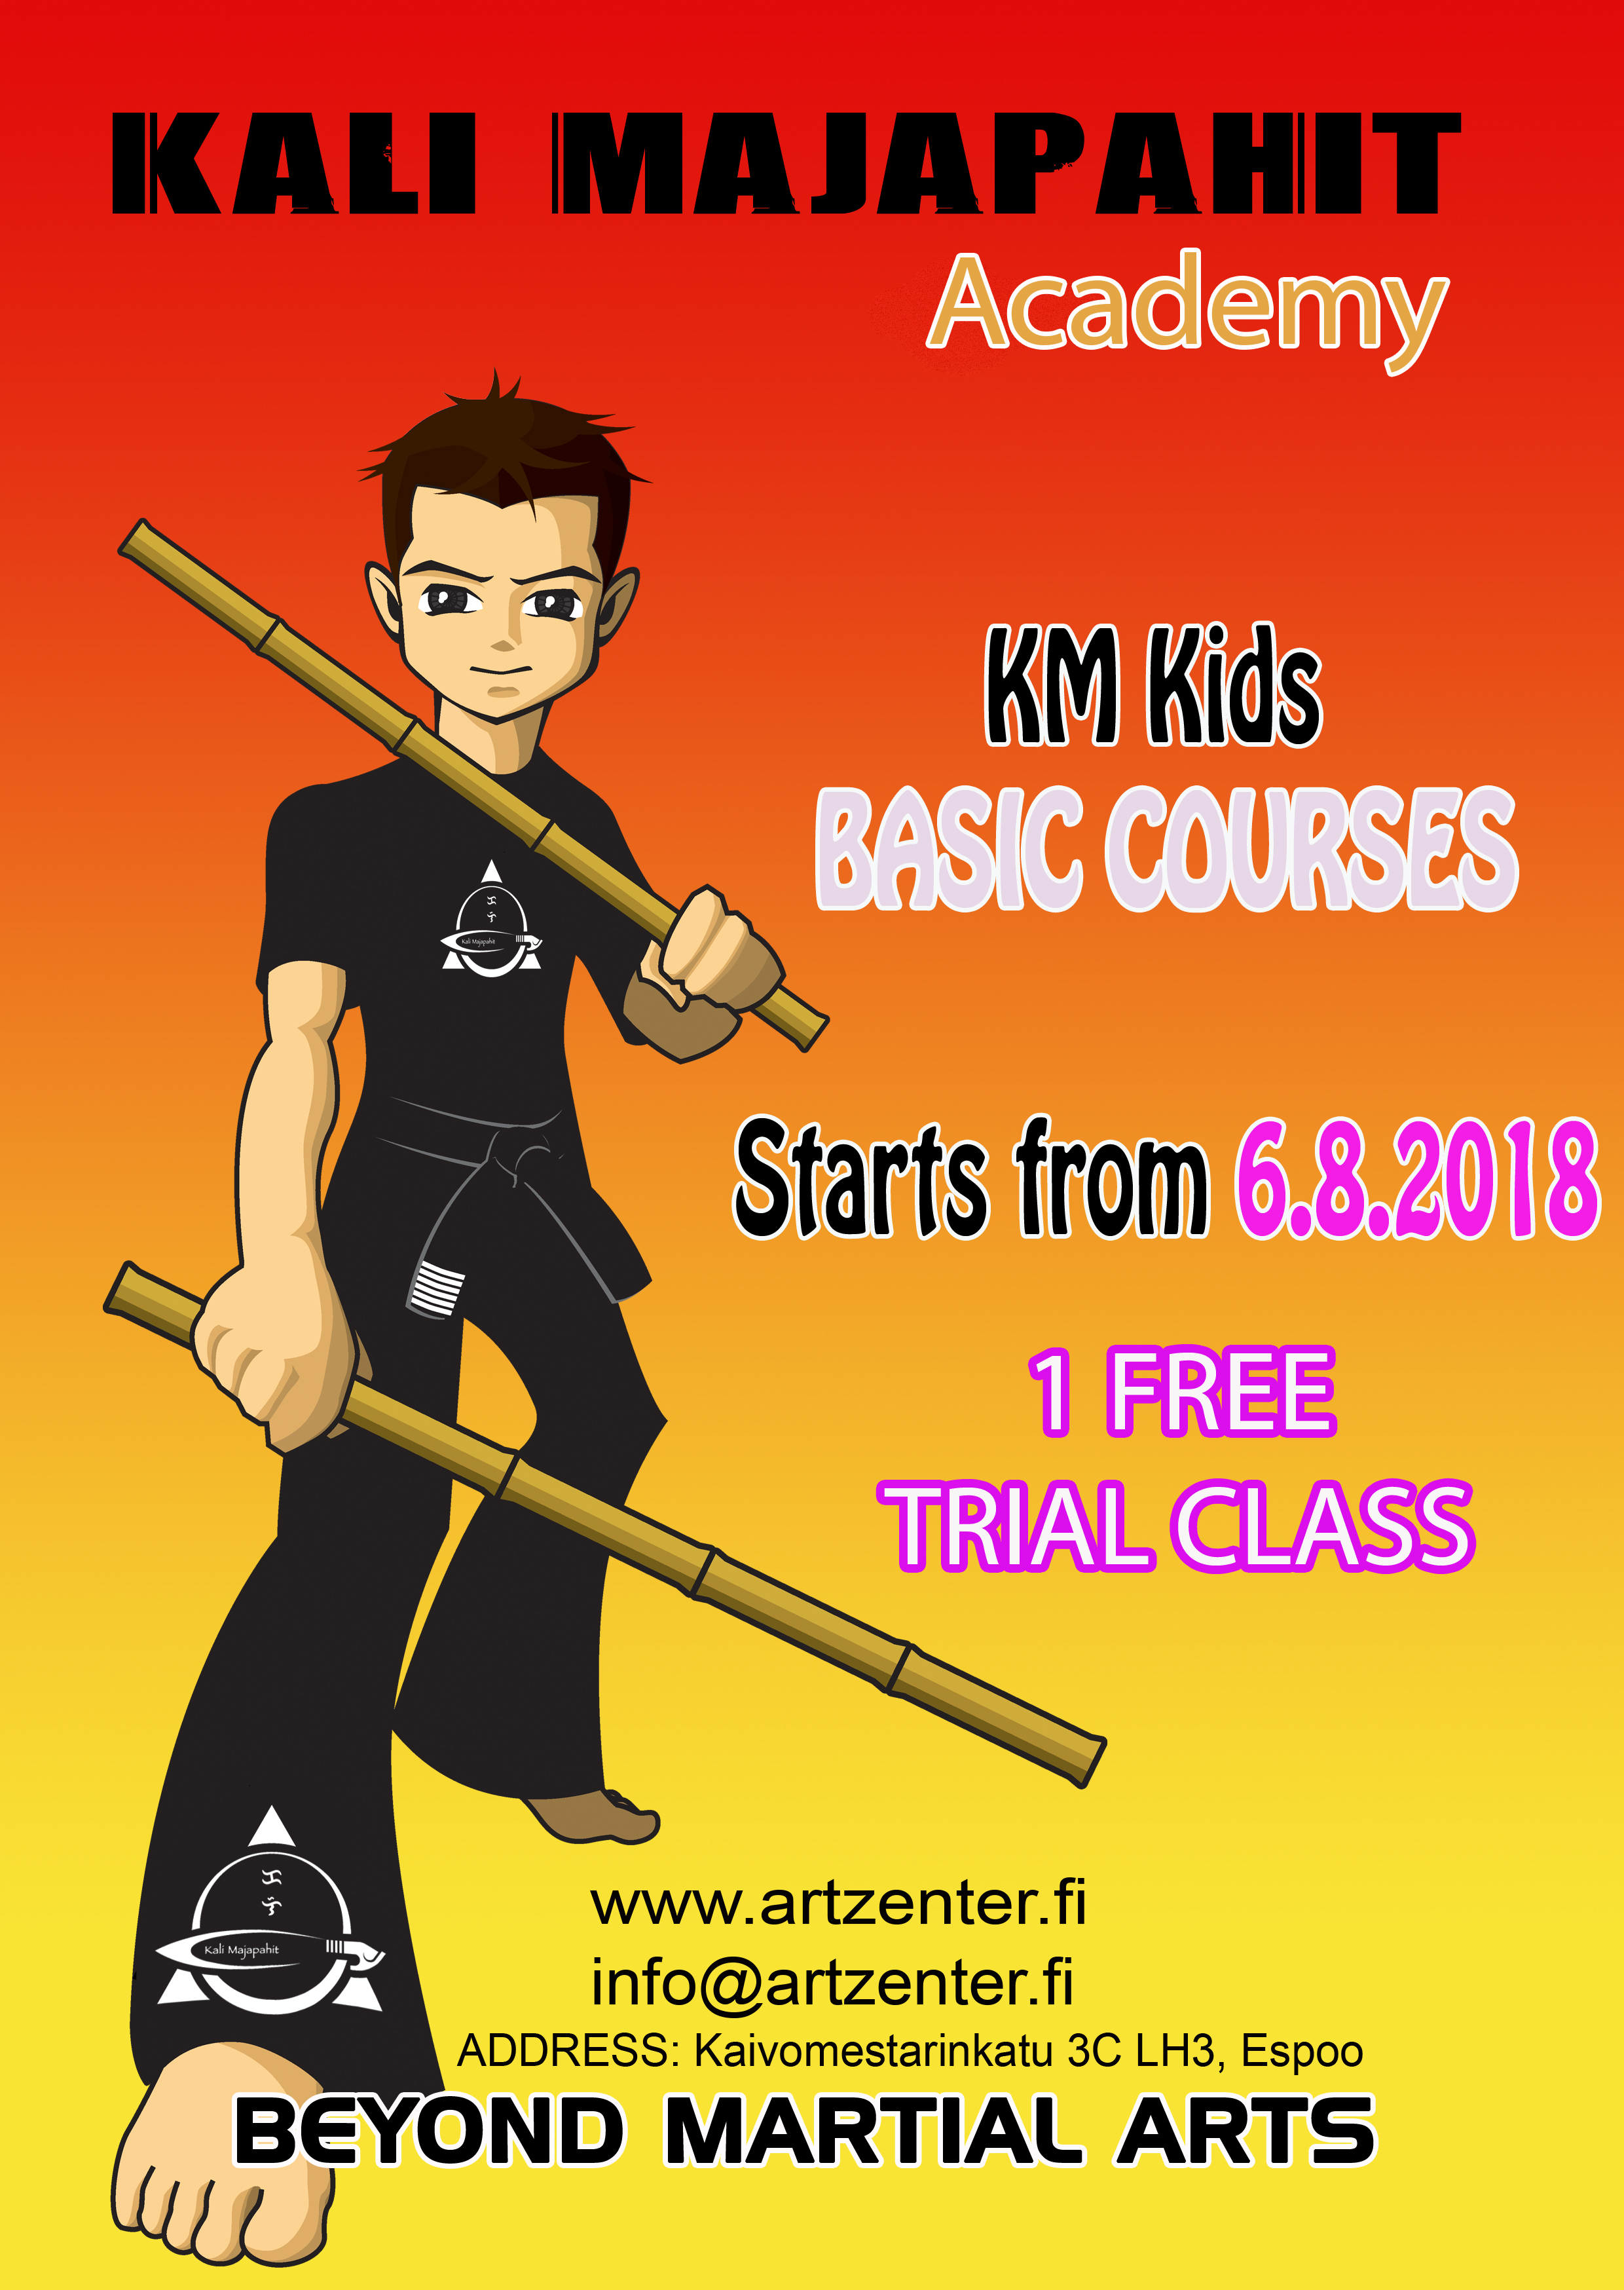 KM KIDS BASIC COURSES 6.8.2018[5565]